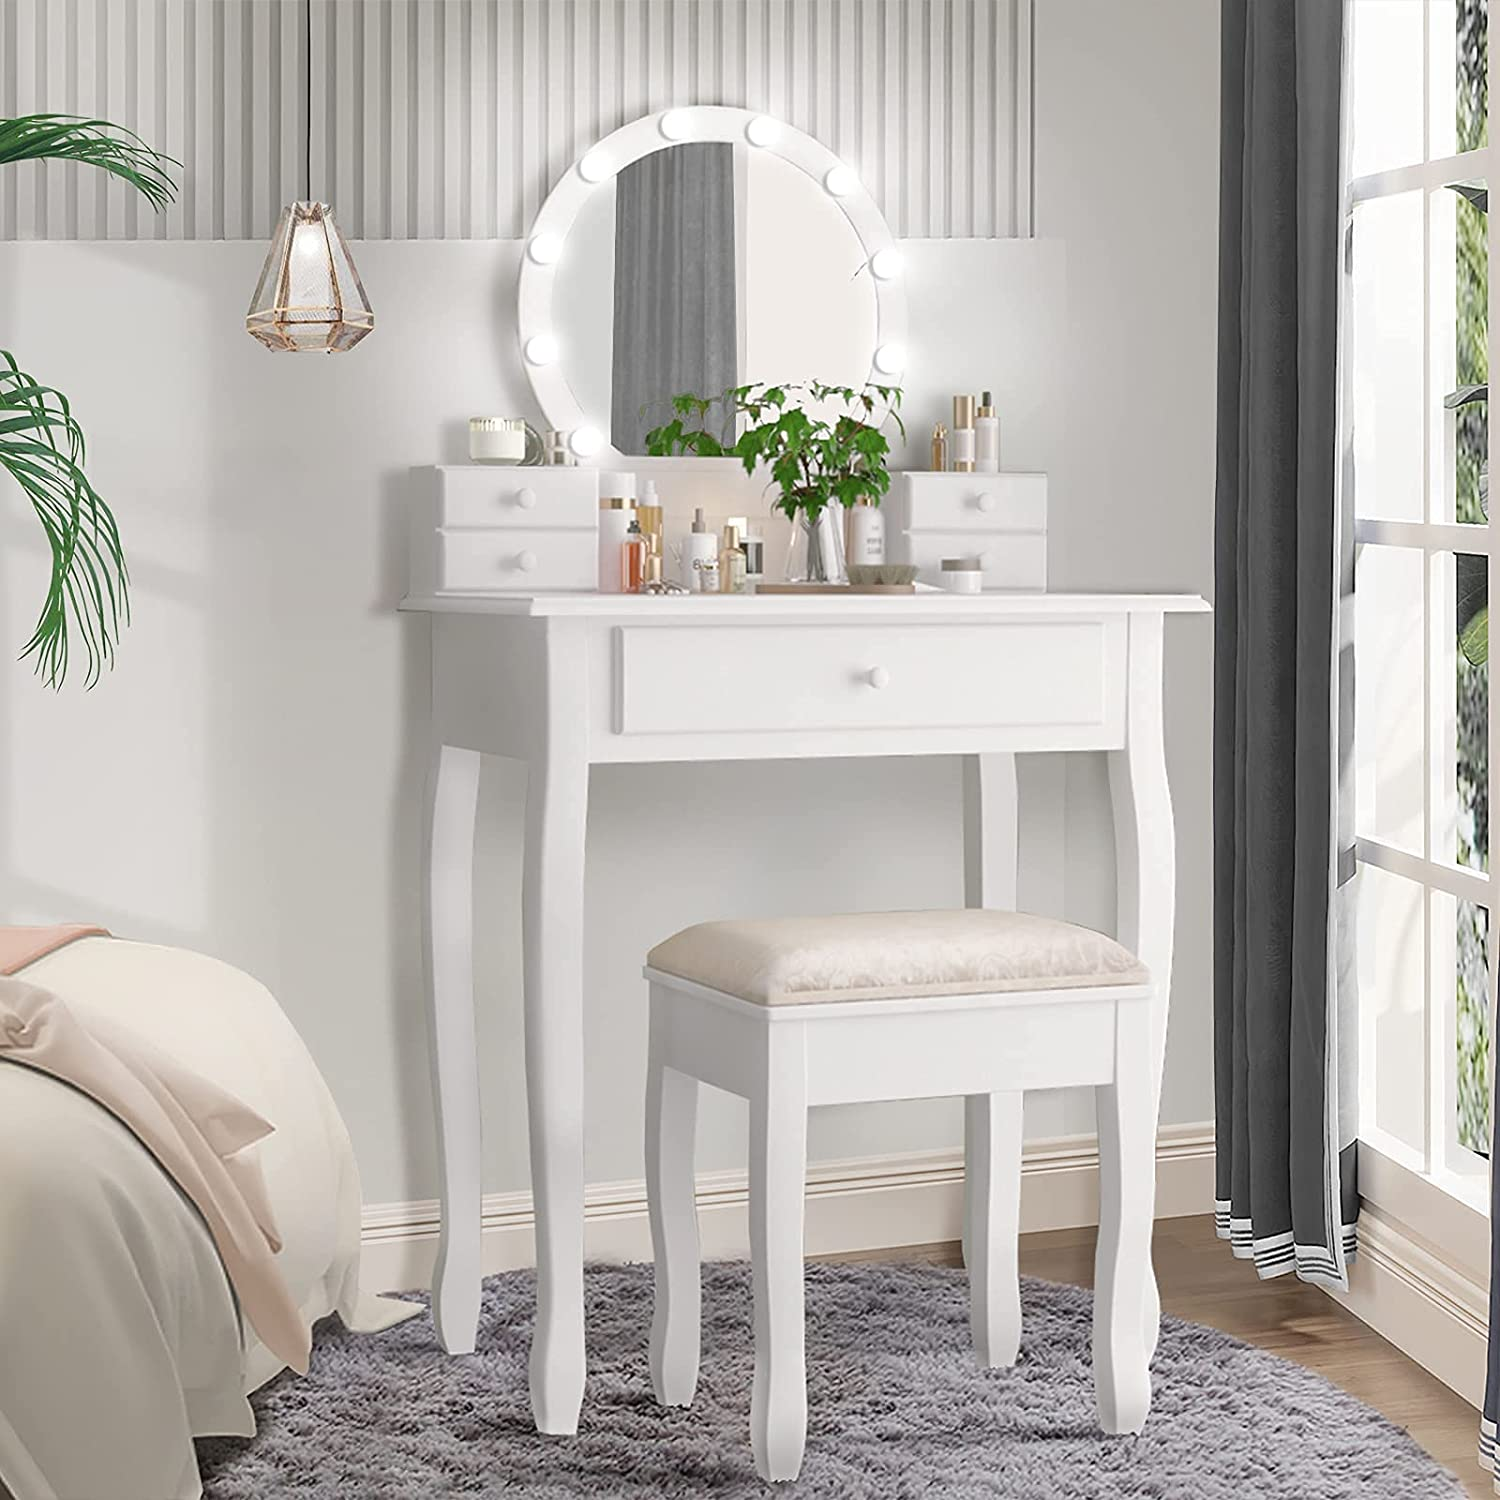 Drefure Vanity Table Set Makeup Table with Round Mirror, 3 Color LED Light Adjustable Brightness, Dressing Desk Bedroom Vanity Set with 5 Drawers and Cushioned Stool for Bedroom, White